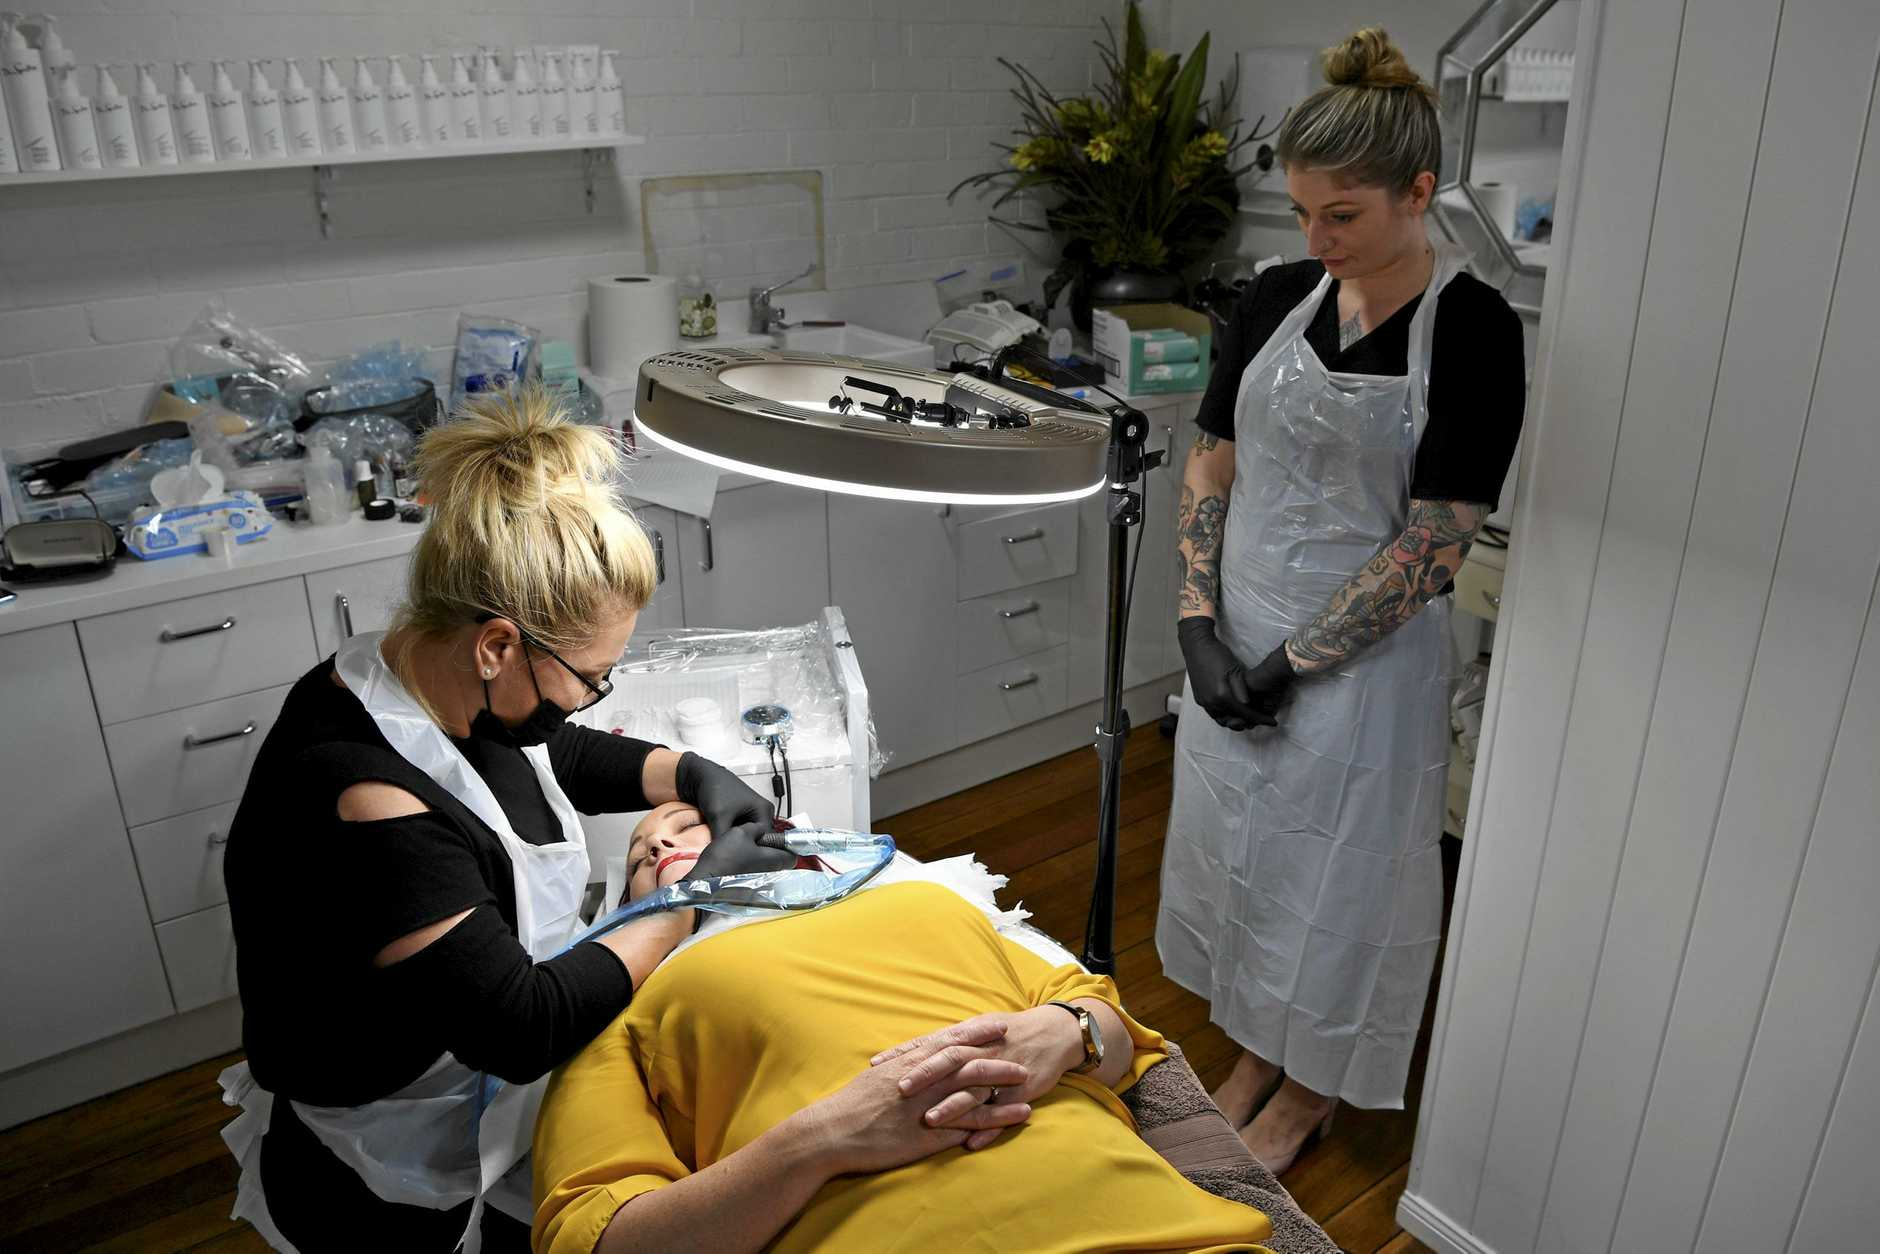 2019 UK cosmetic tattooist of the year Stefanie Toms at work on Amy Klein watched by Nicole Prance during a master class at Toowoomba's Beauty Effects, Tuesday, August 6, 2019.